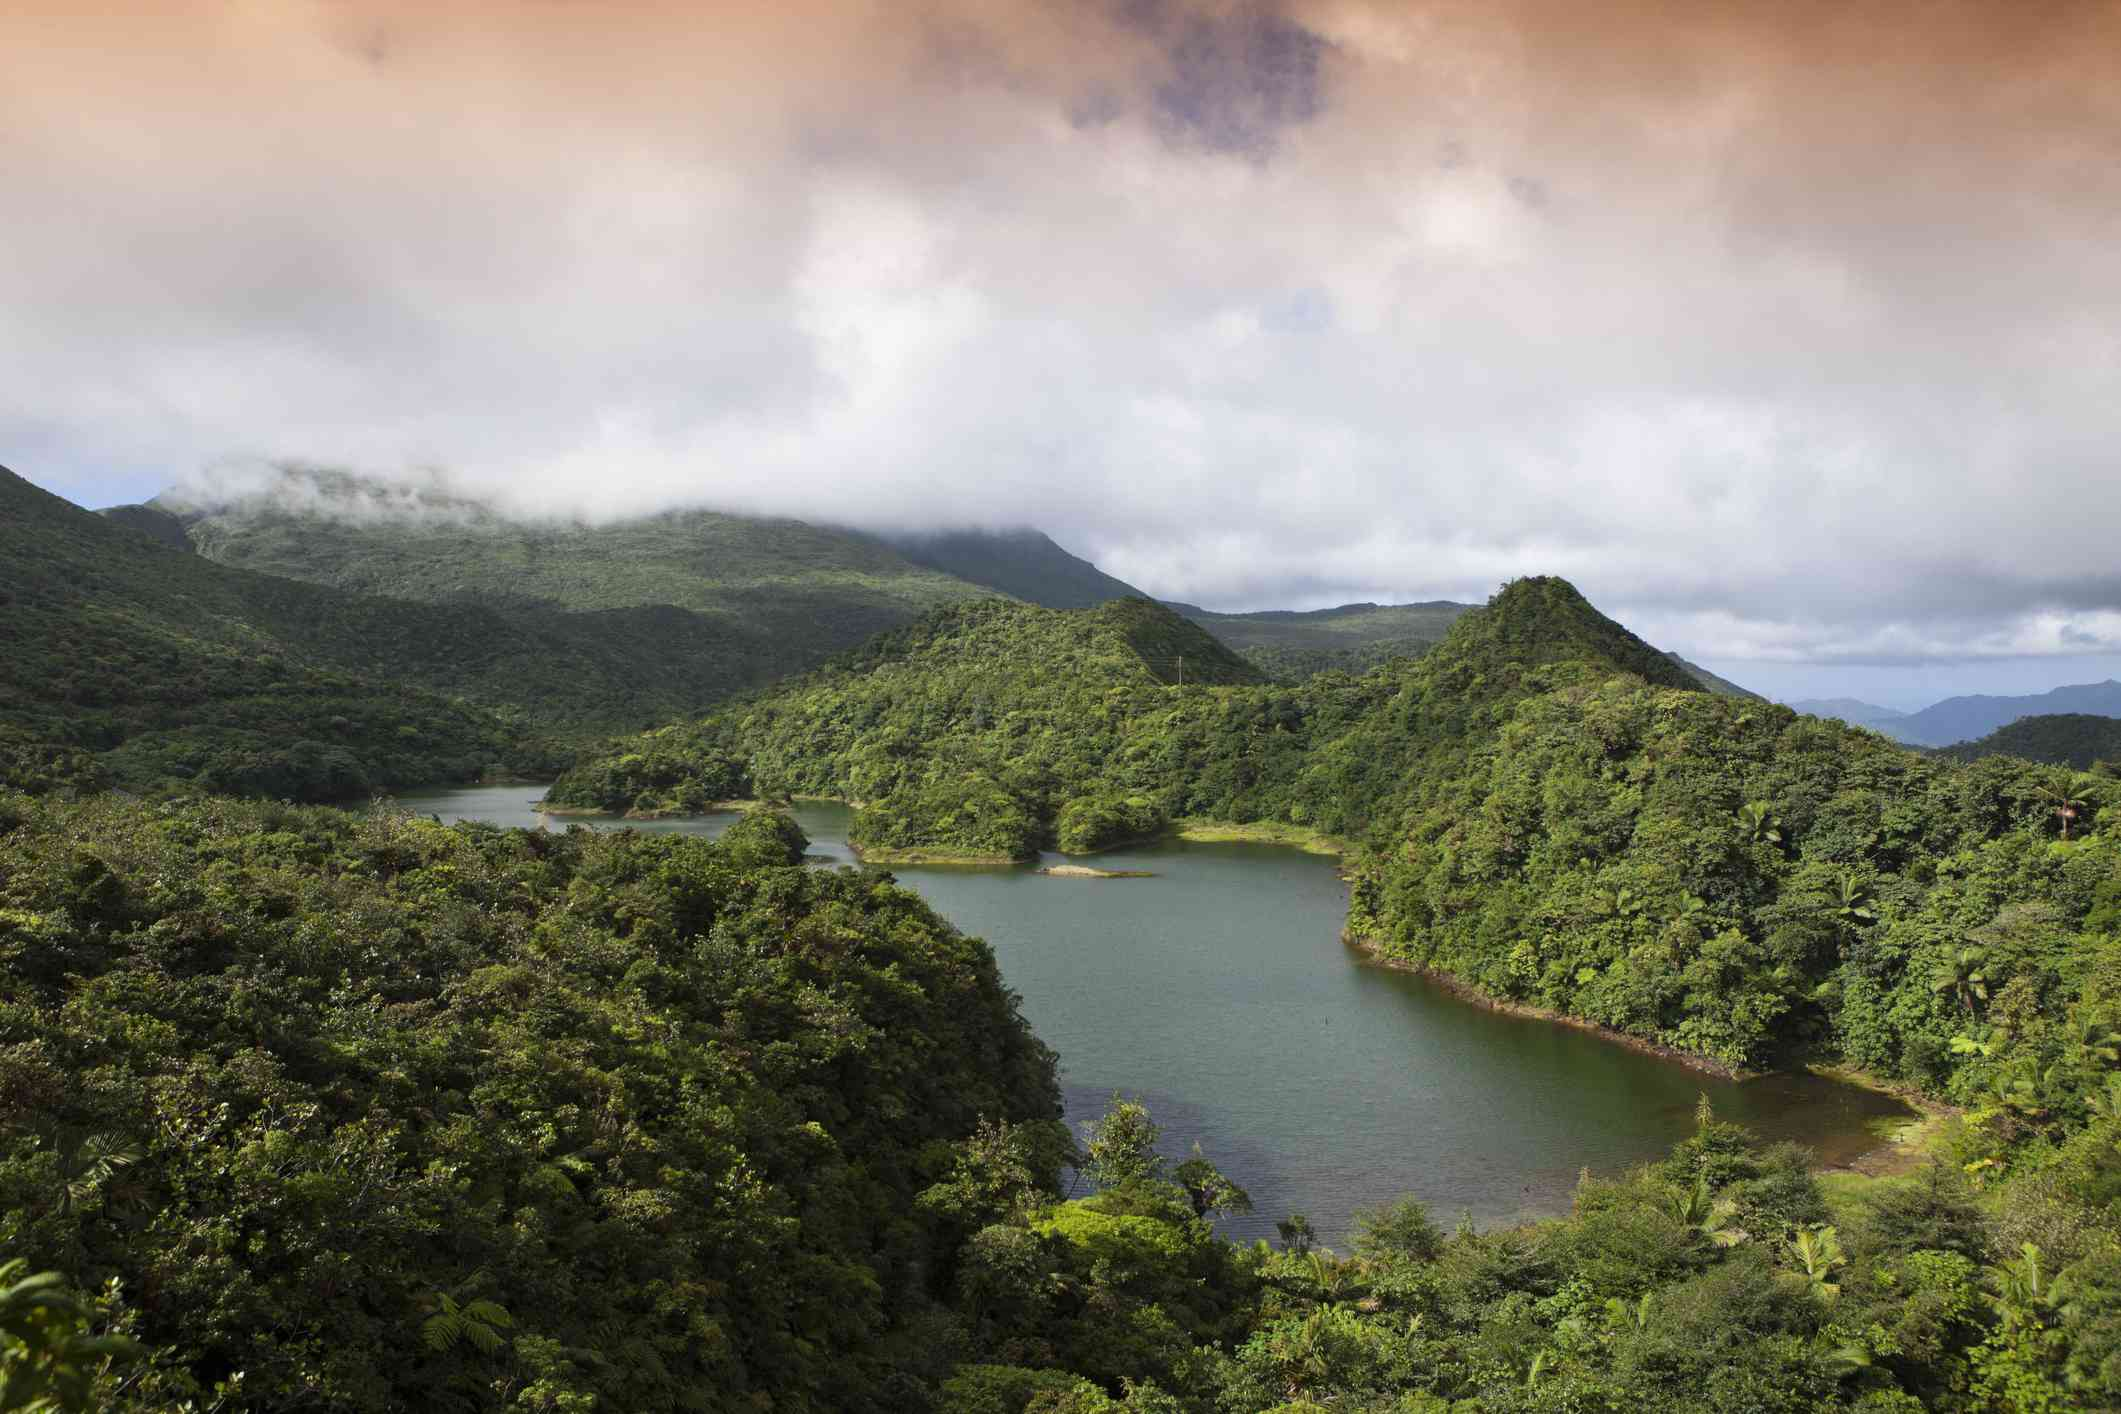 aerial view of the green hills of Dominica